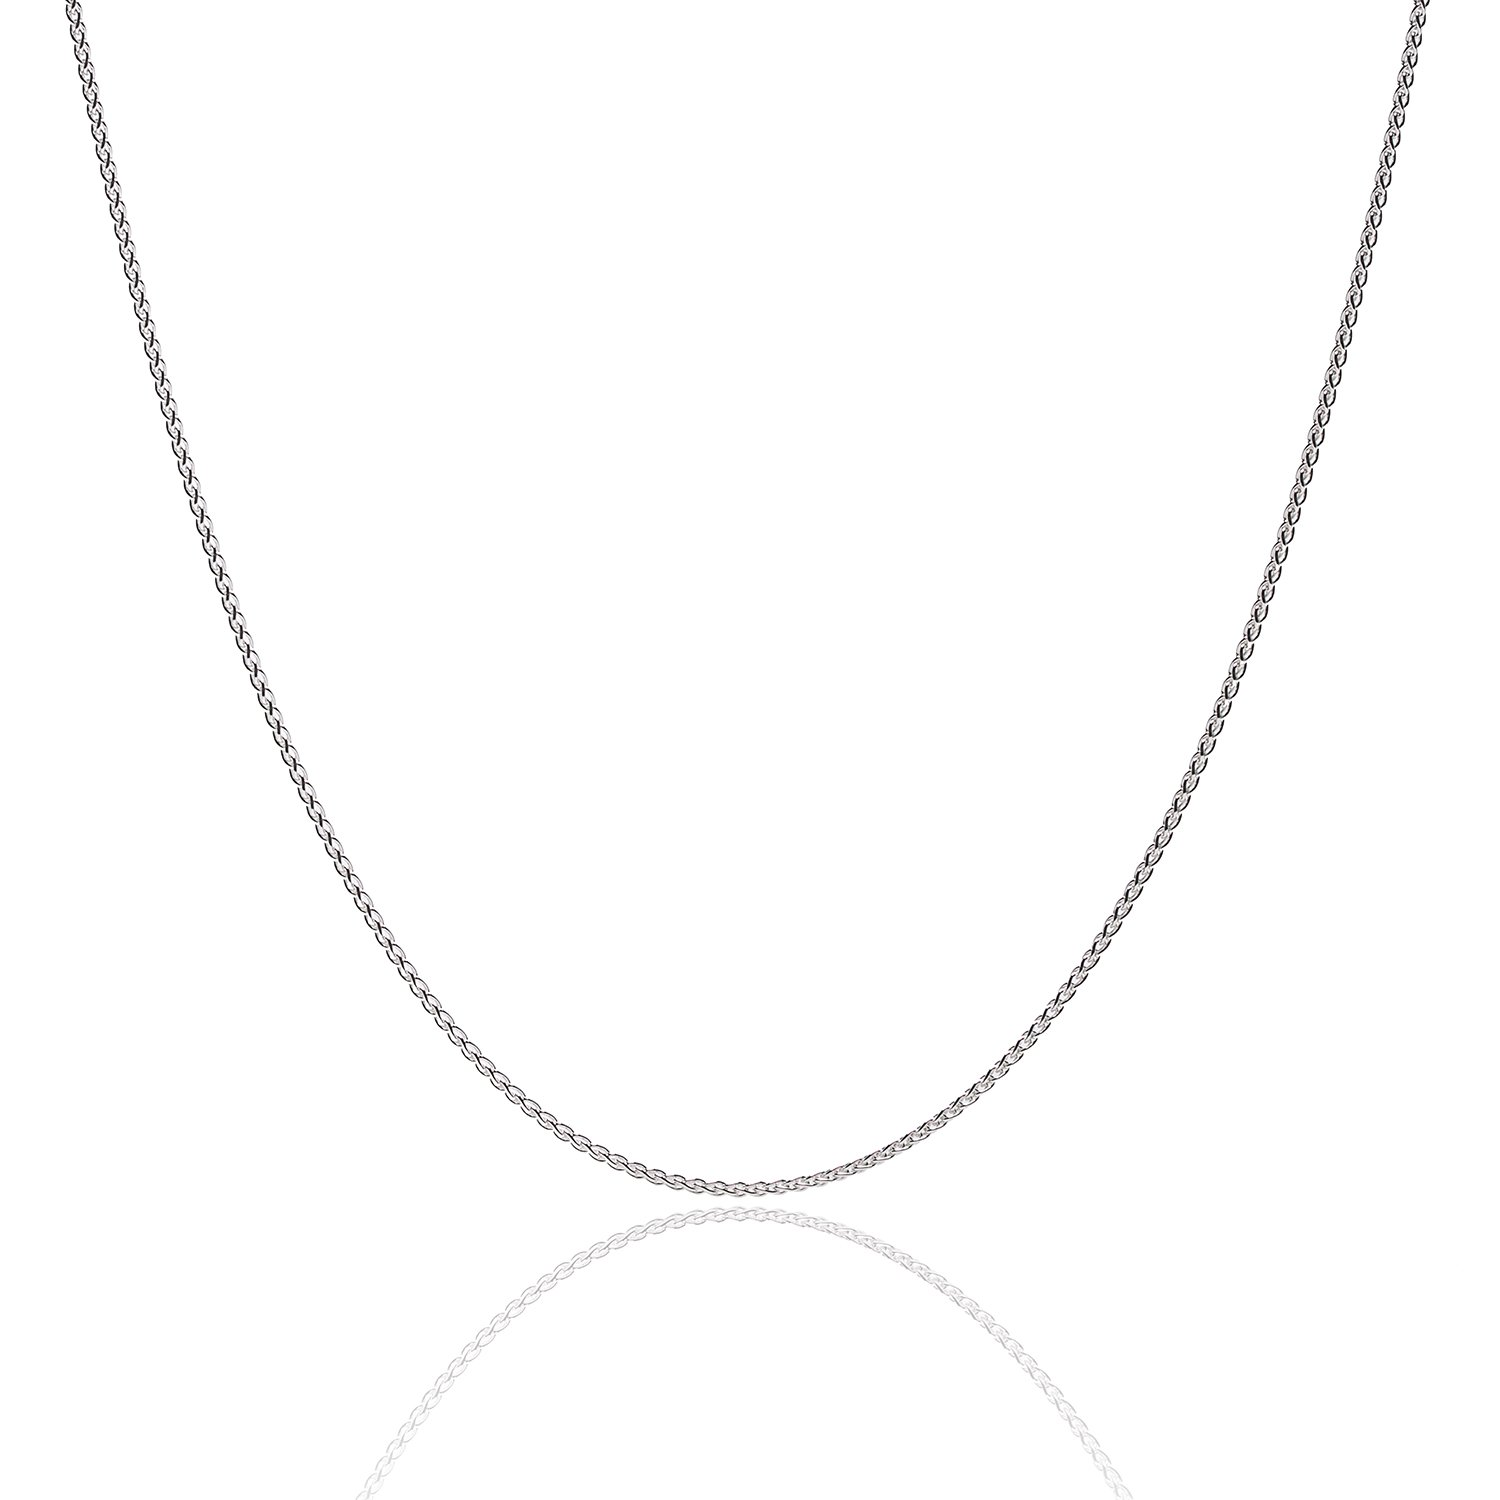 925 Sterling Silver 1.3MM Wheat Chain Lobster Claw Clasp 24'' by Designer Sterling Silver (Image #8)